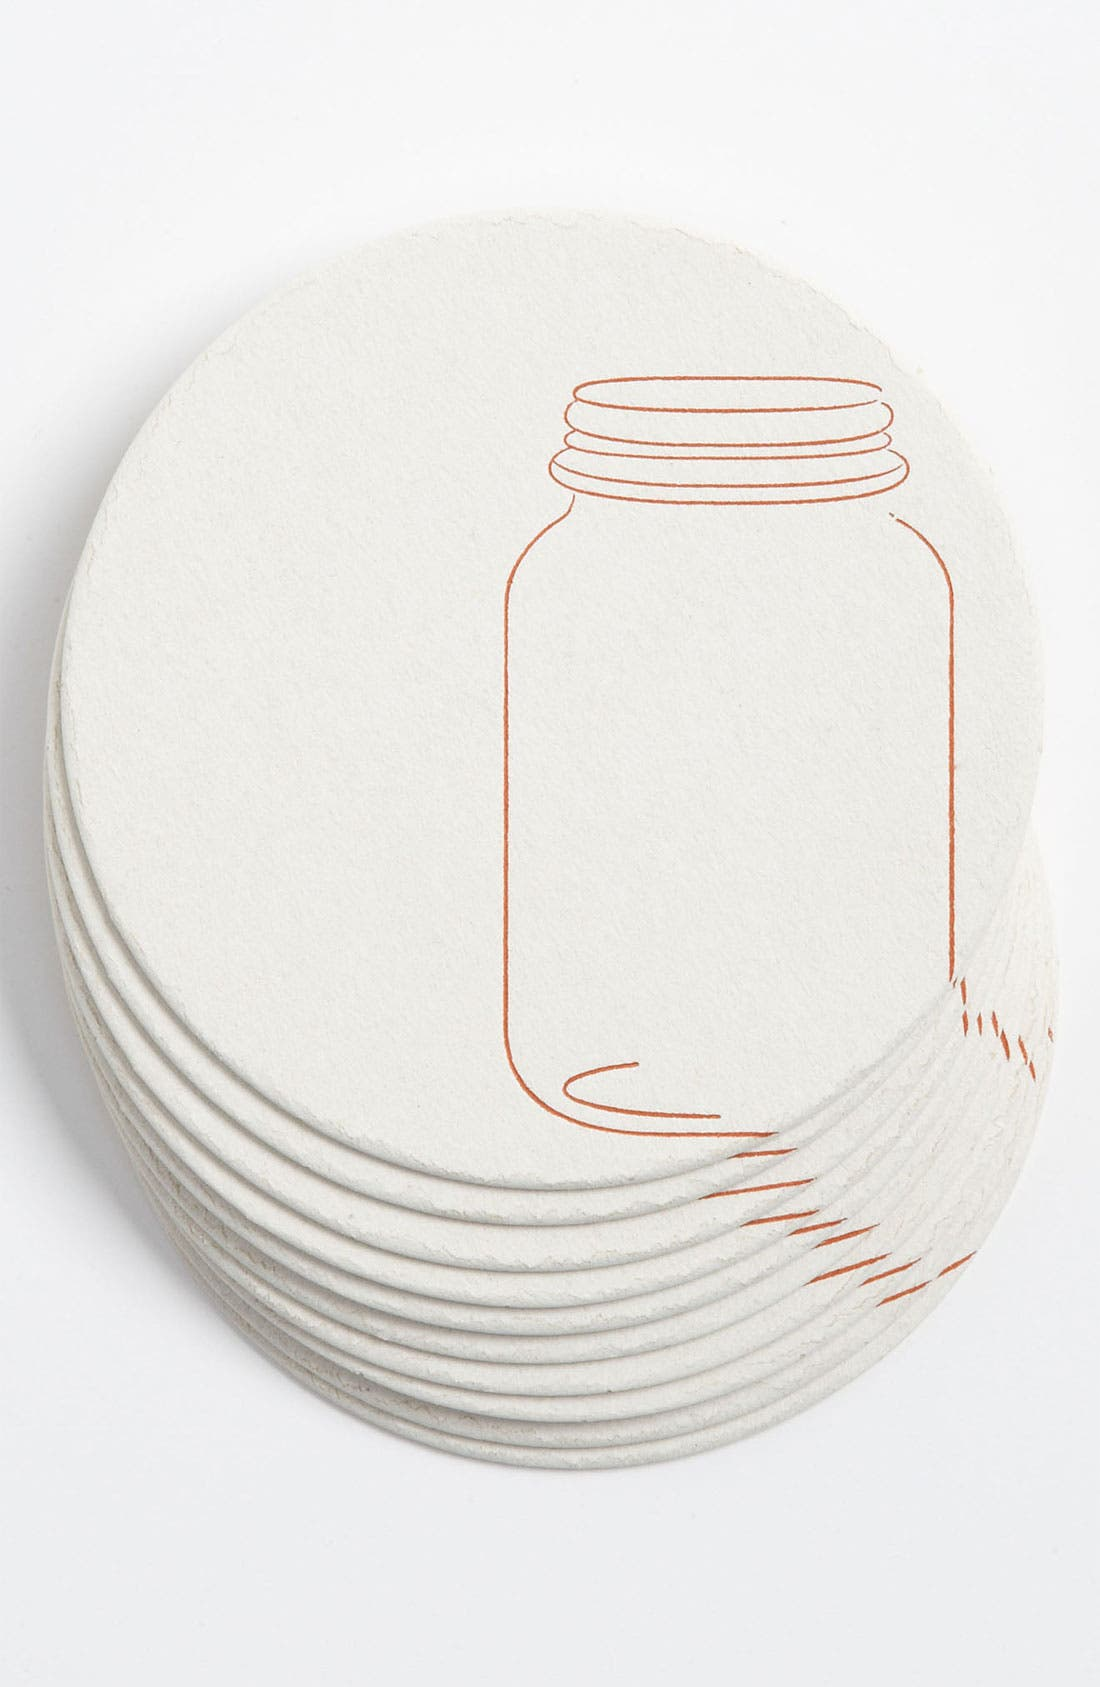 Main Image - 'Mason Jars' Letterpress Coasters (Set of 10)